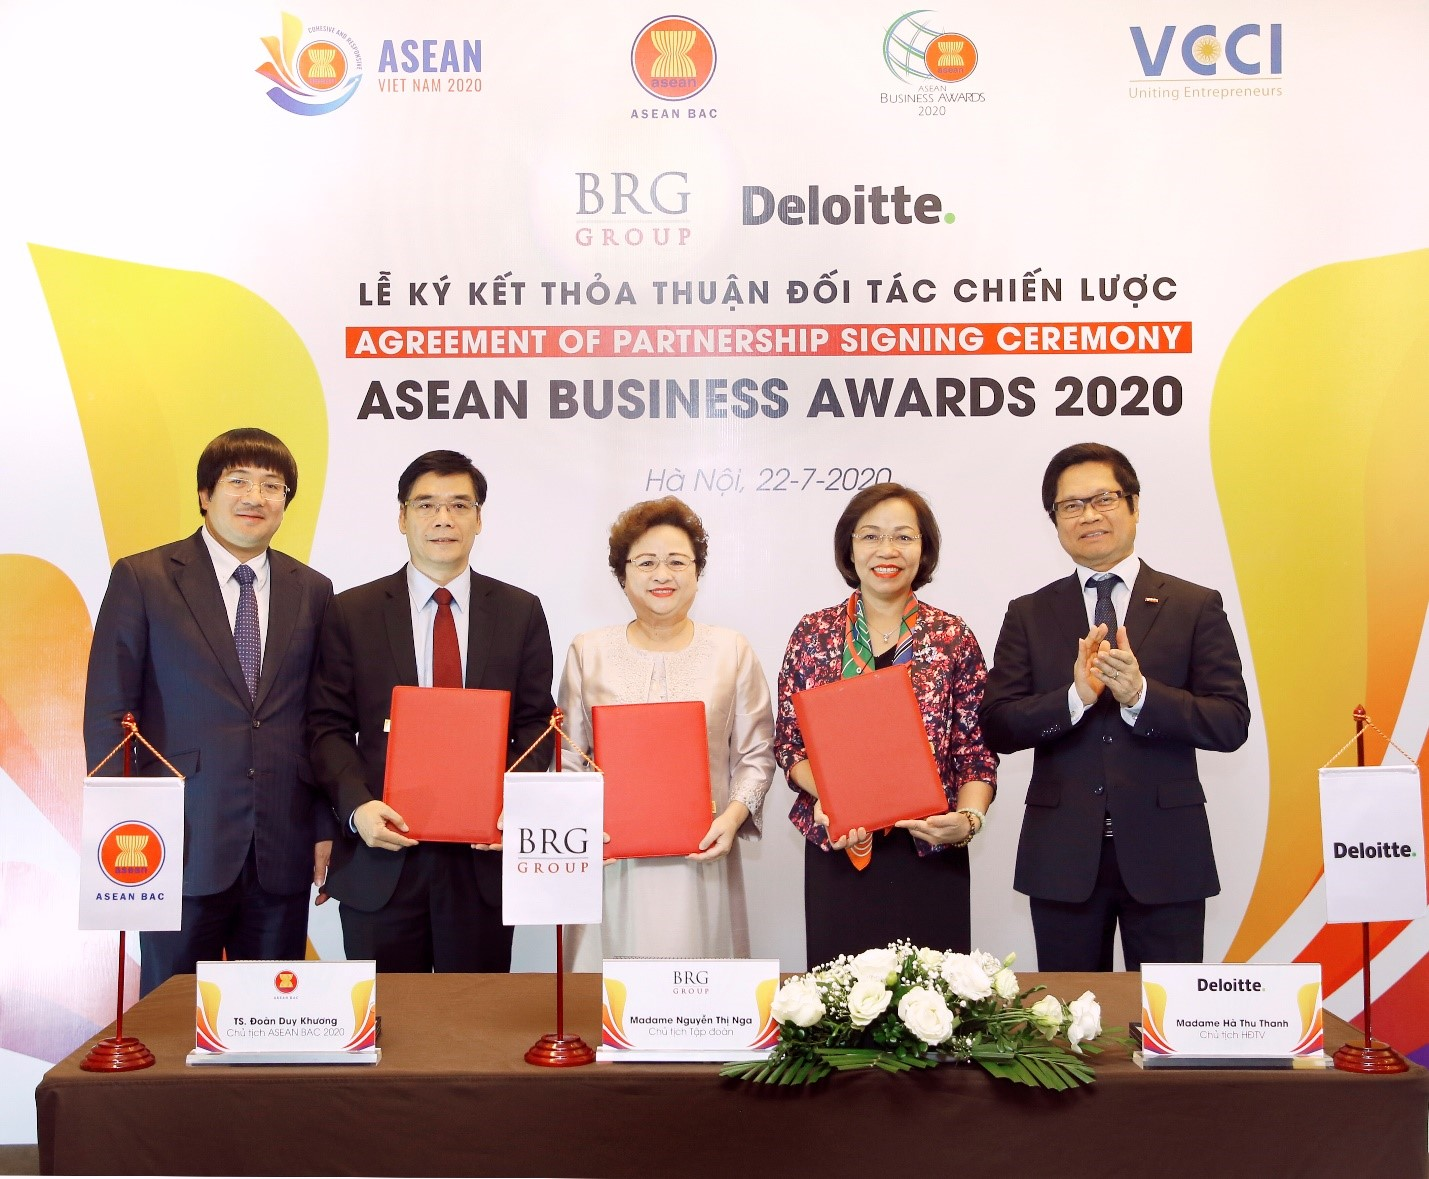 Dr. Doan Duy Khuong, Chairman of ASEAN BAC 2020, Madame Nguyen Thi Nga, Chairwoman of ABA 2020 (center), and Madame Ha Thi Thu Thanh, Chairperson of Deloitte Vietnam signing Agreement of Partnership for ASEAN Business Awards 2020